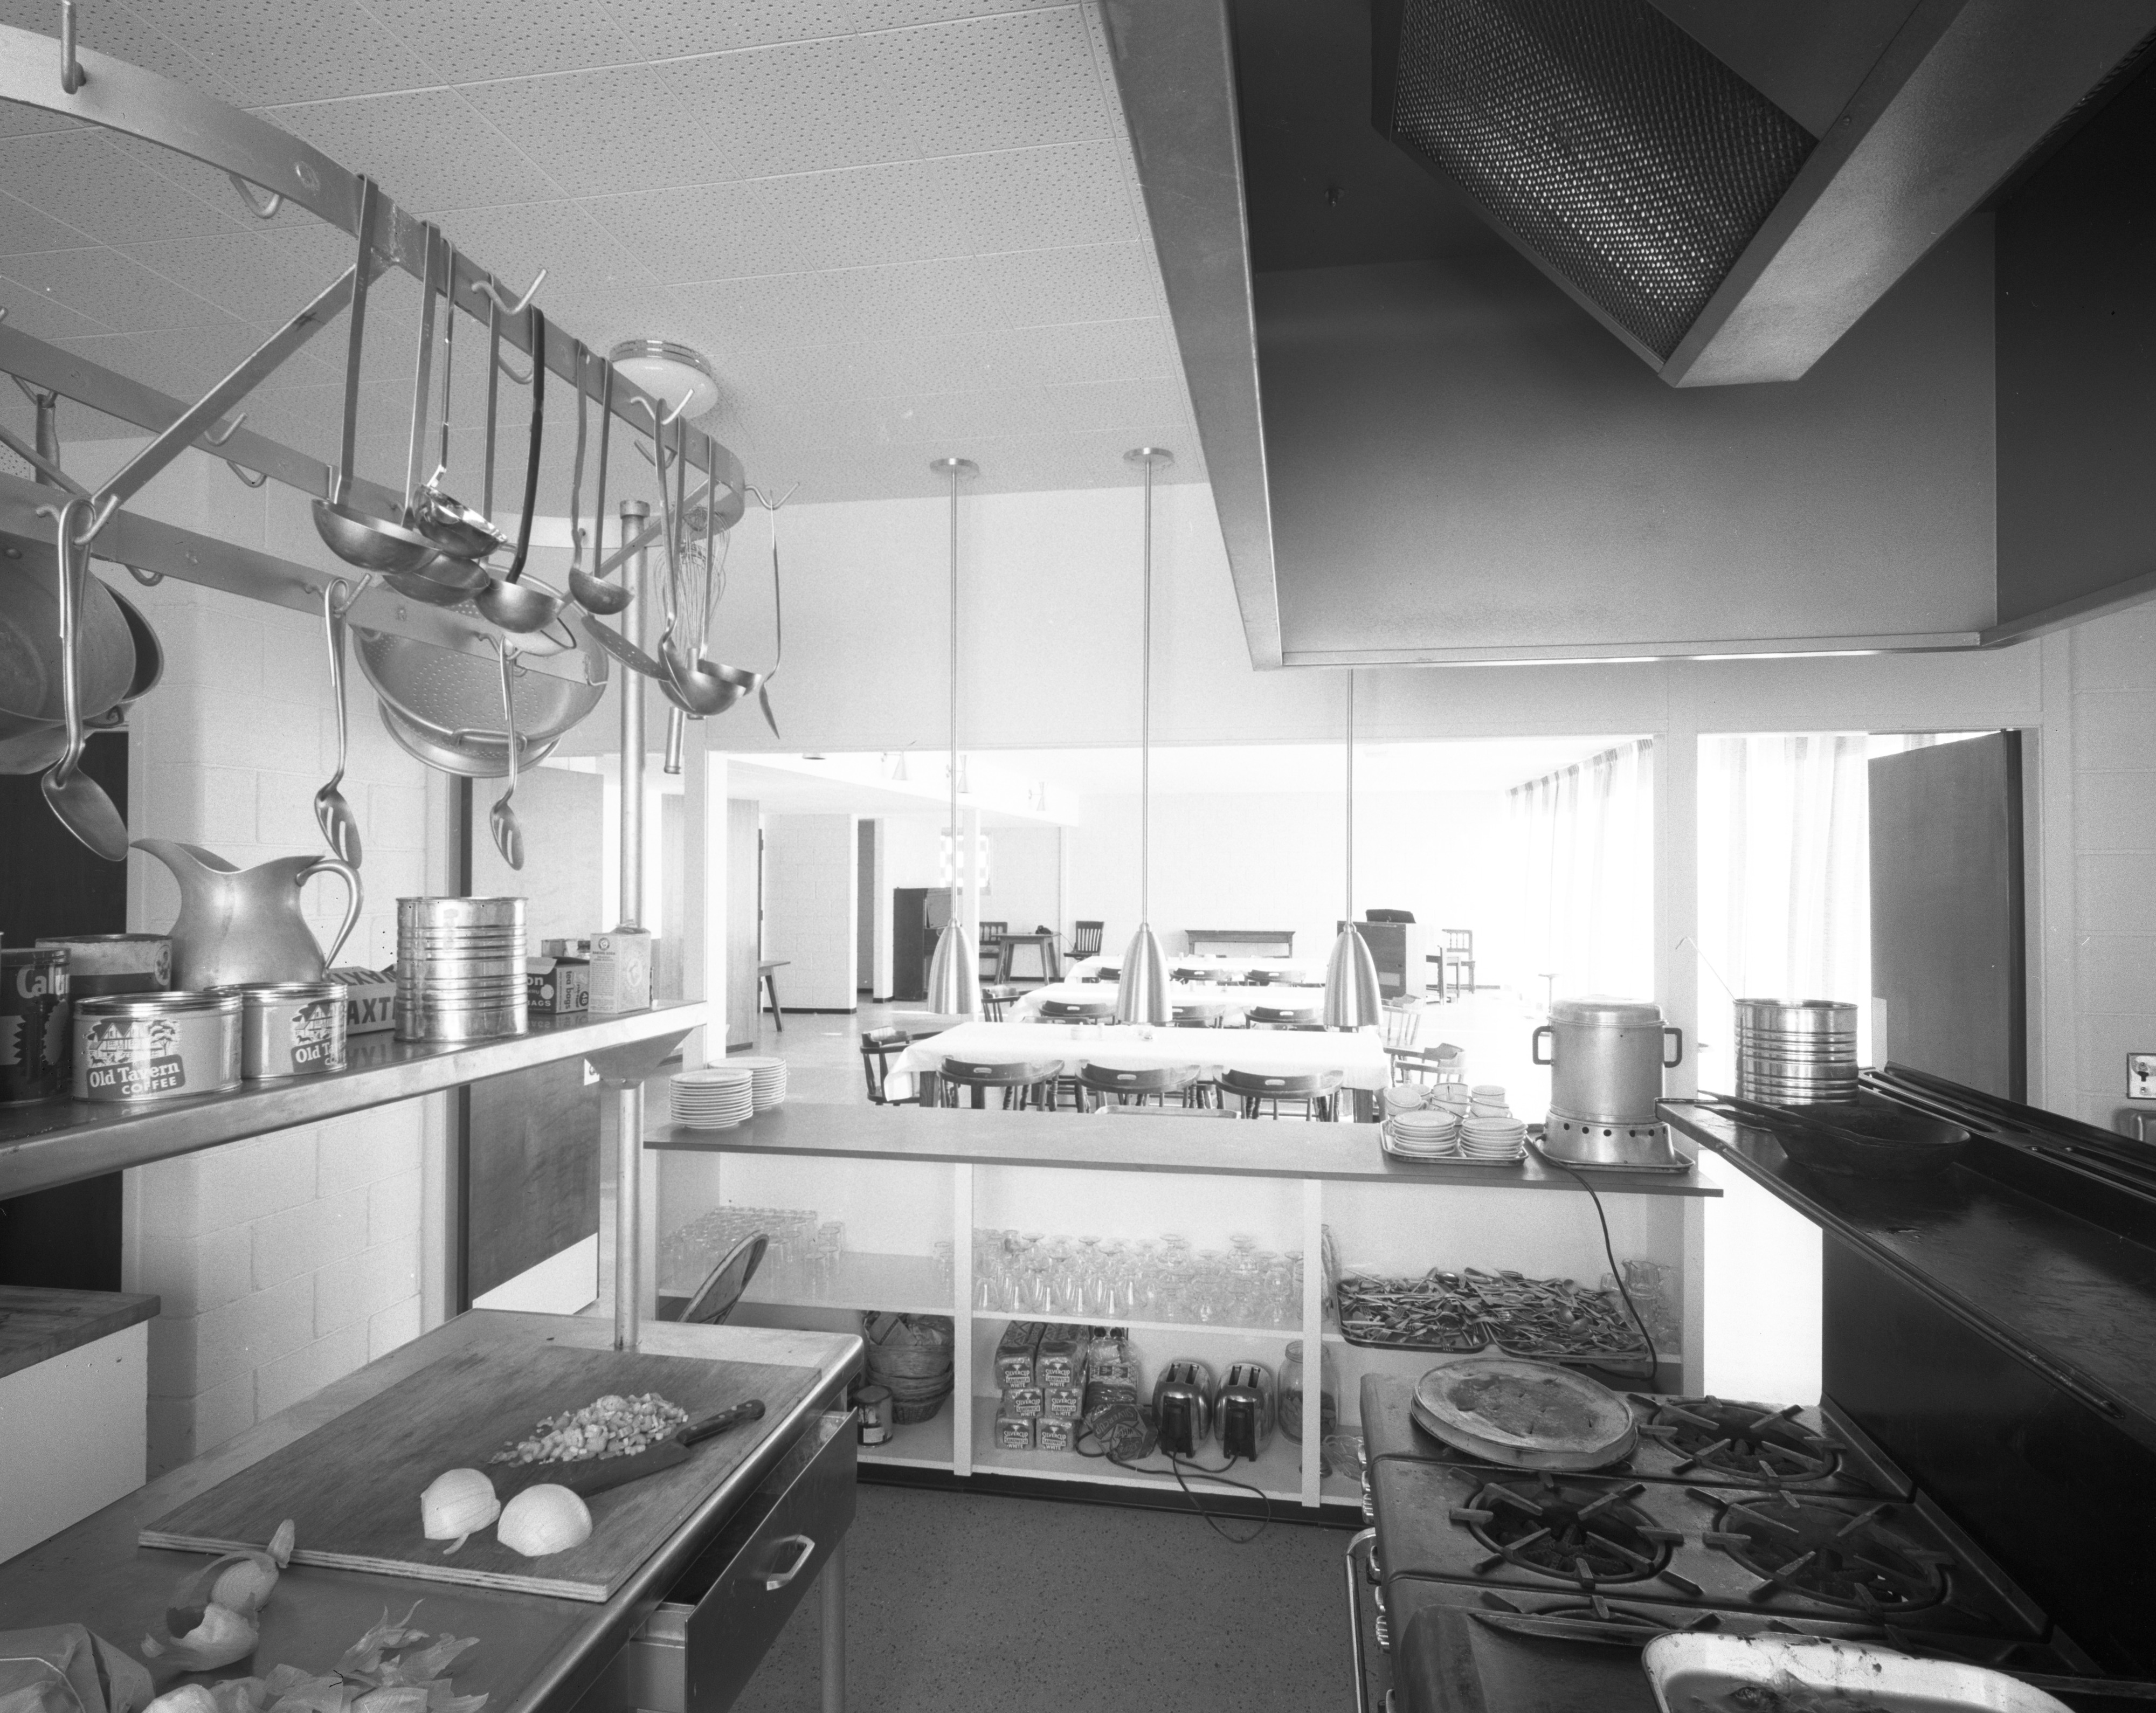 Communal Kitchen at Phi Chi Medical Fraternity Housing on North ...